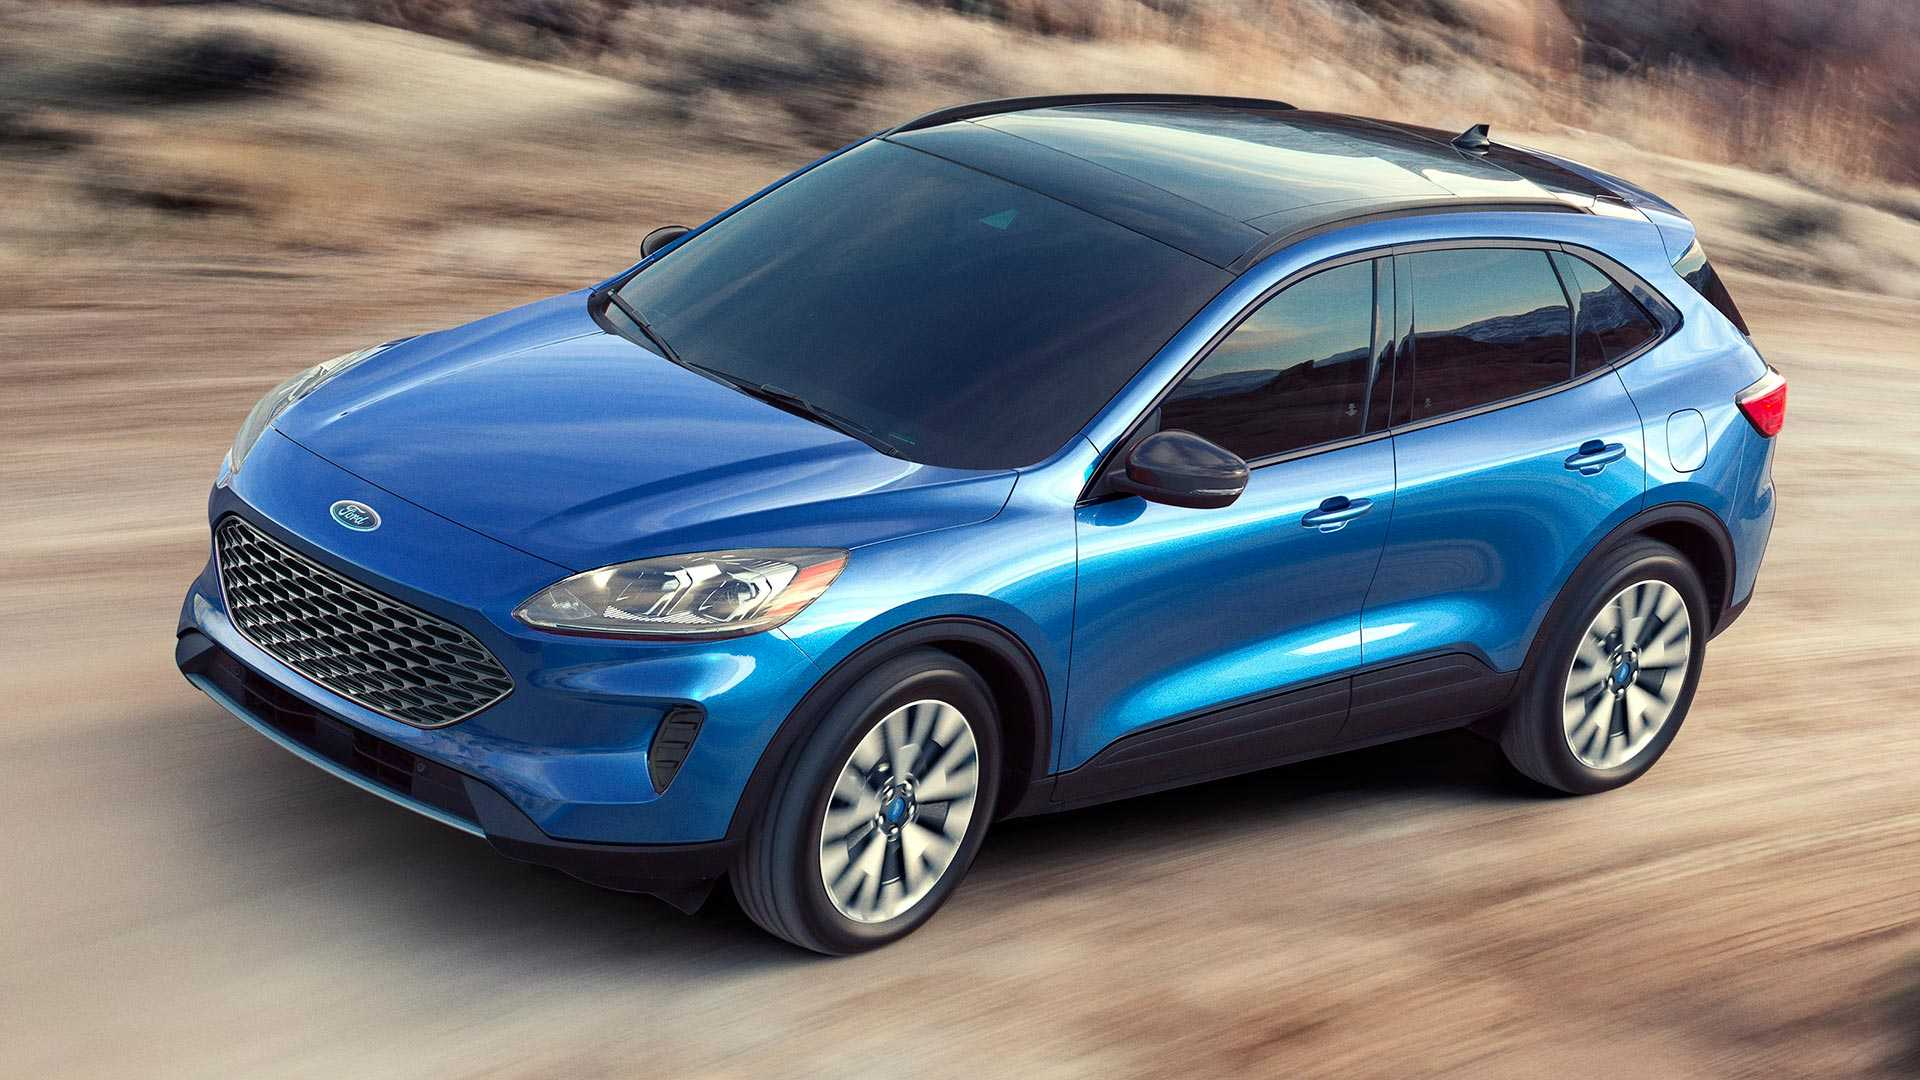 24 All New Ford In 2020 Redesign